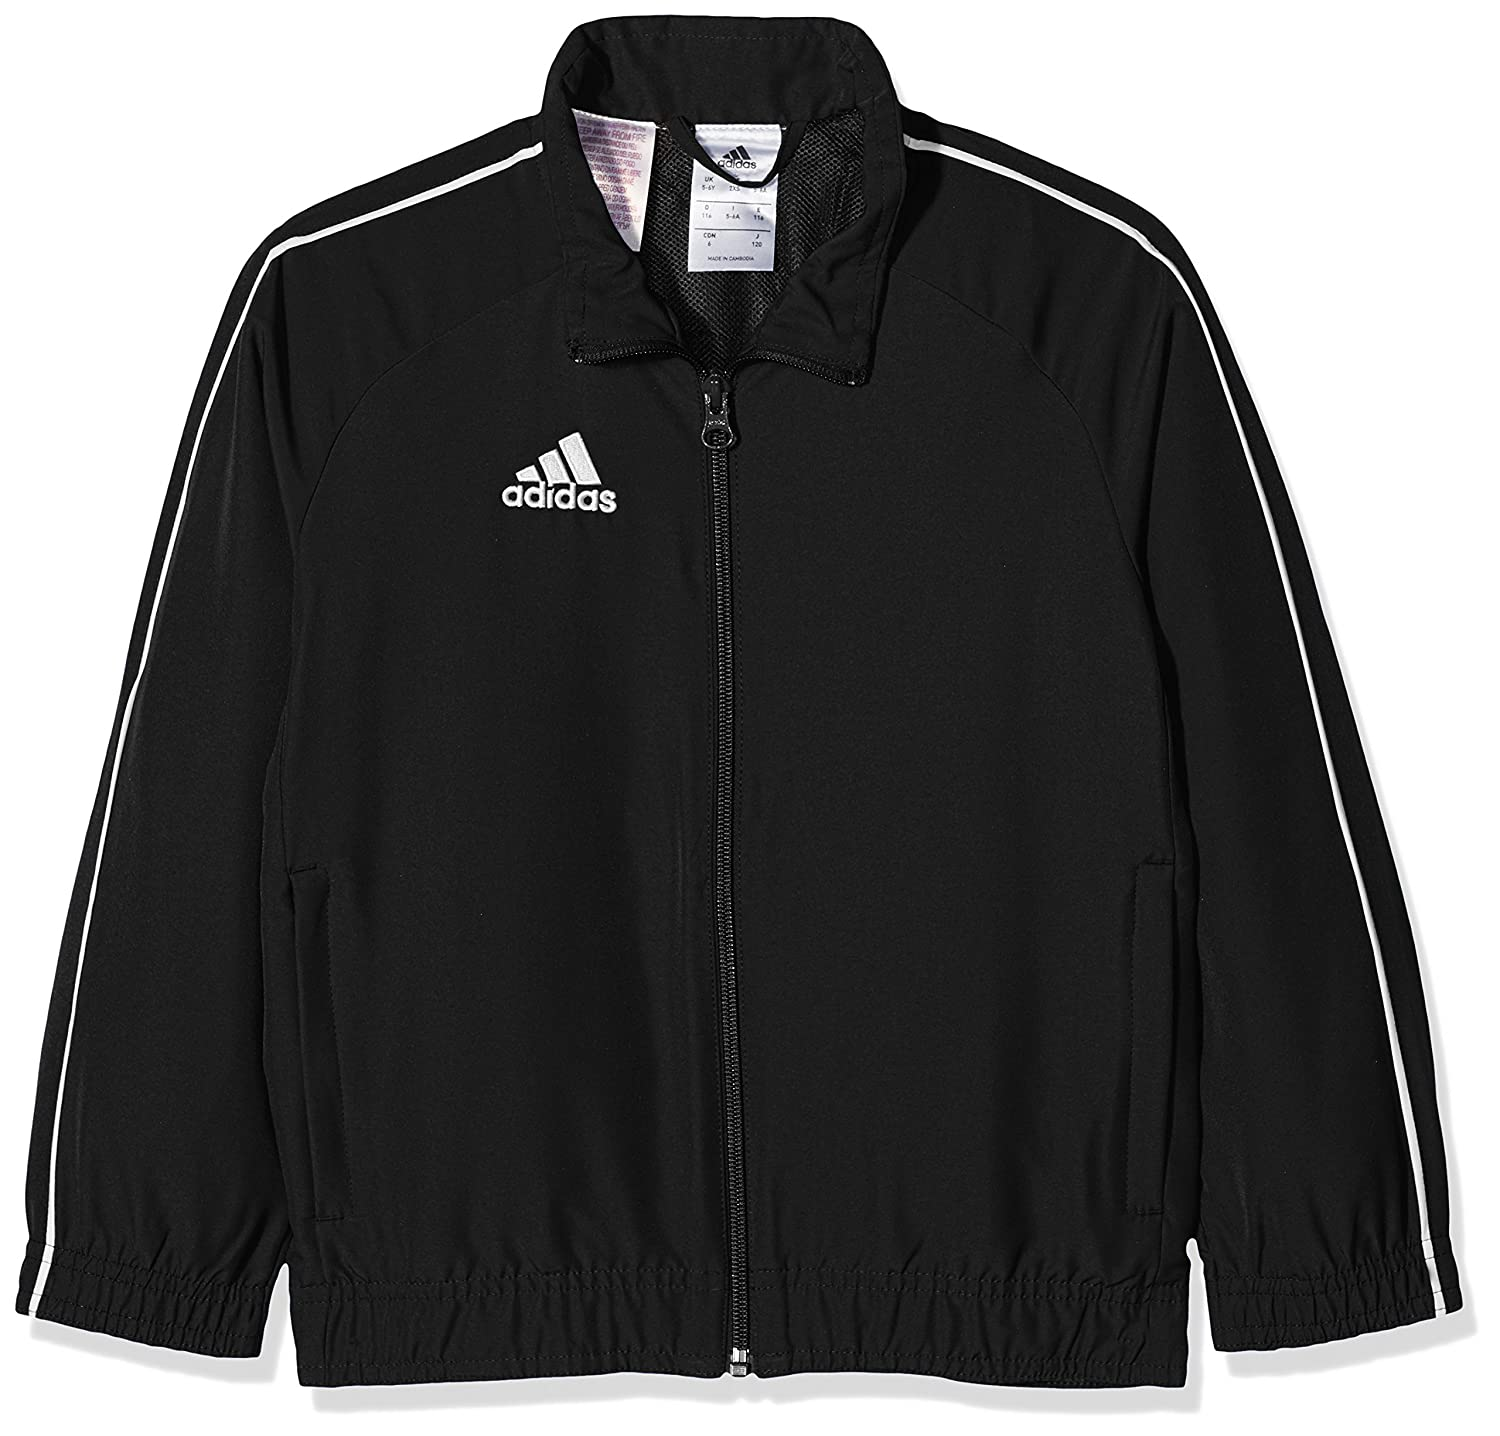 adidas Children's CORE18 Youth Presentation Jacket, Children's Children's